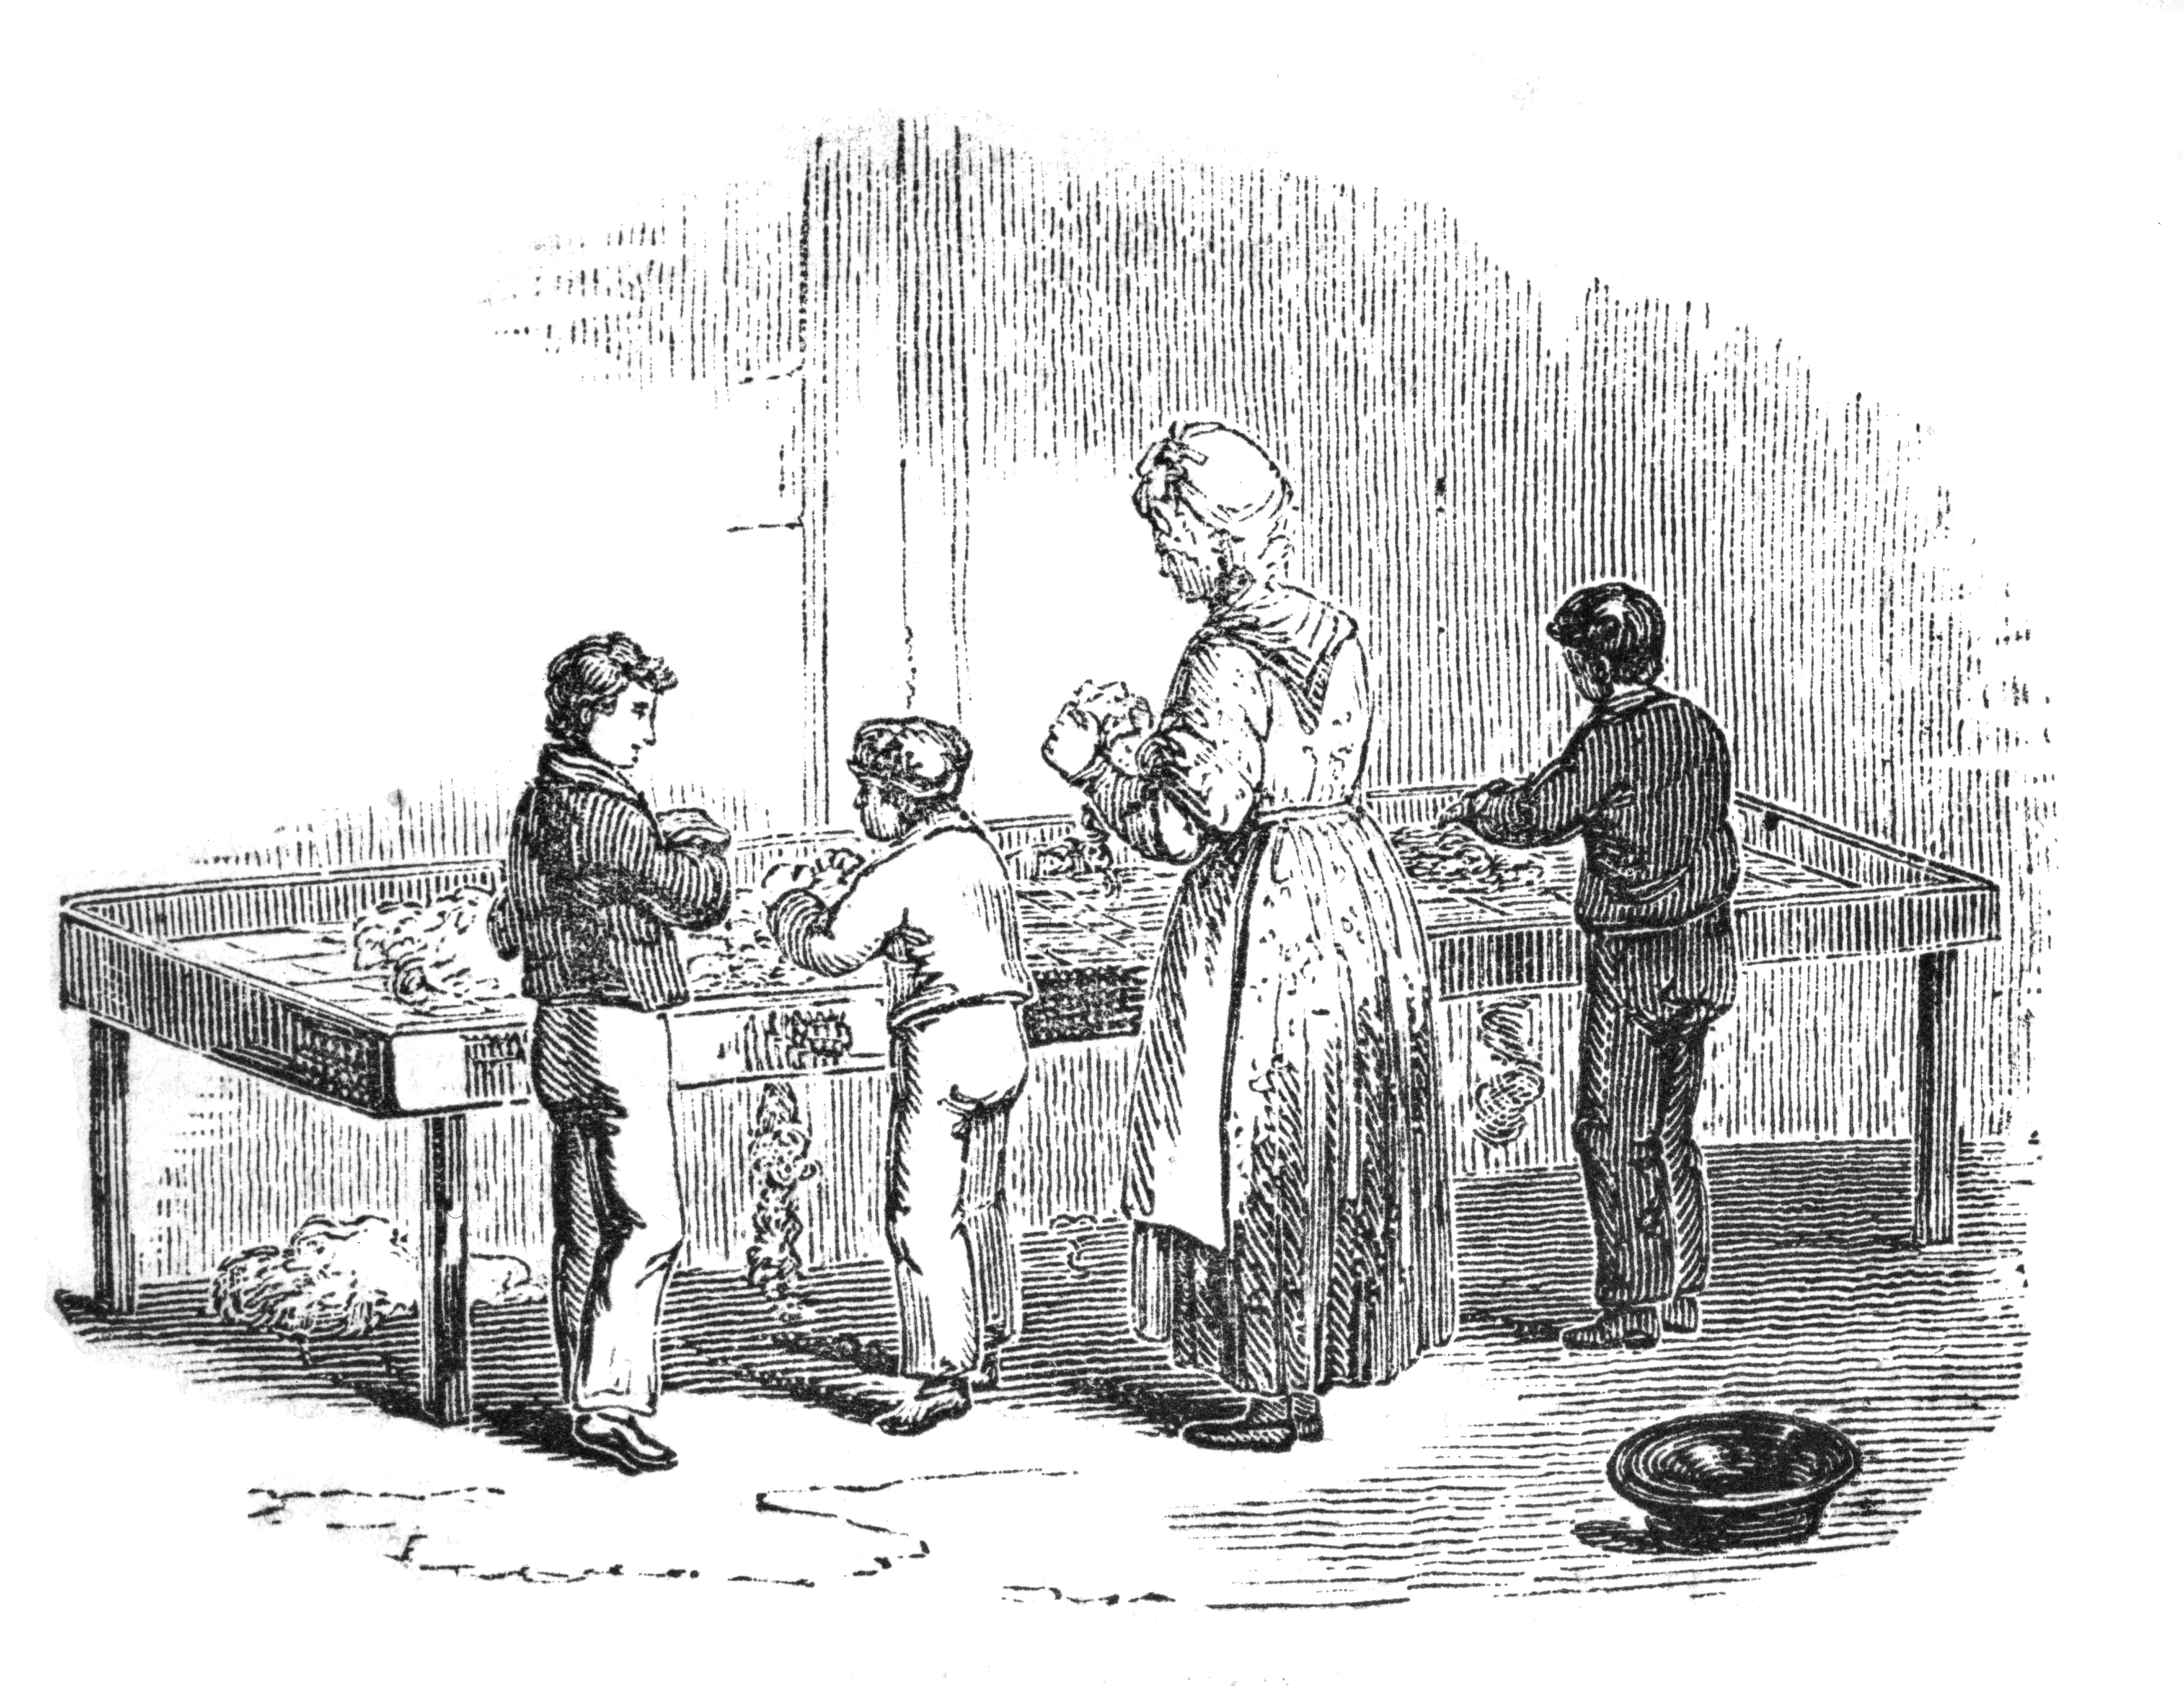 File:Children in a cotton factory 'picking cotton', 1844 Wellcome M0013539.